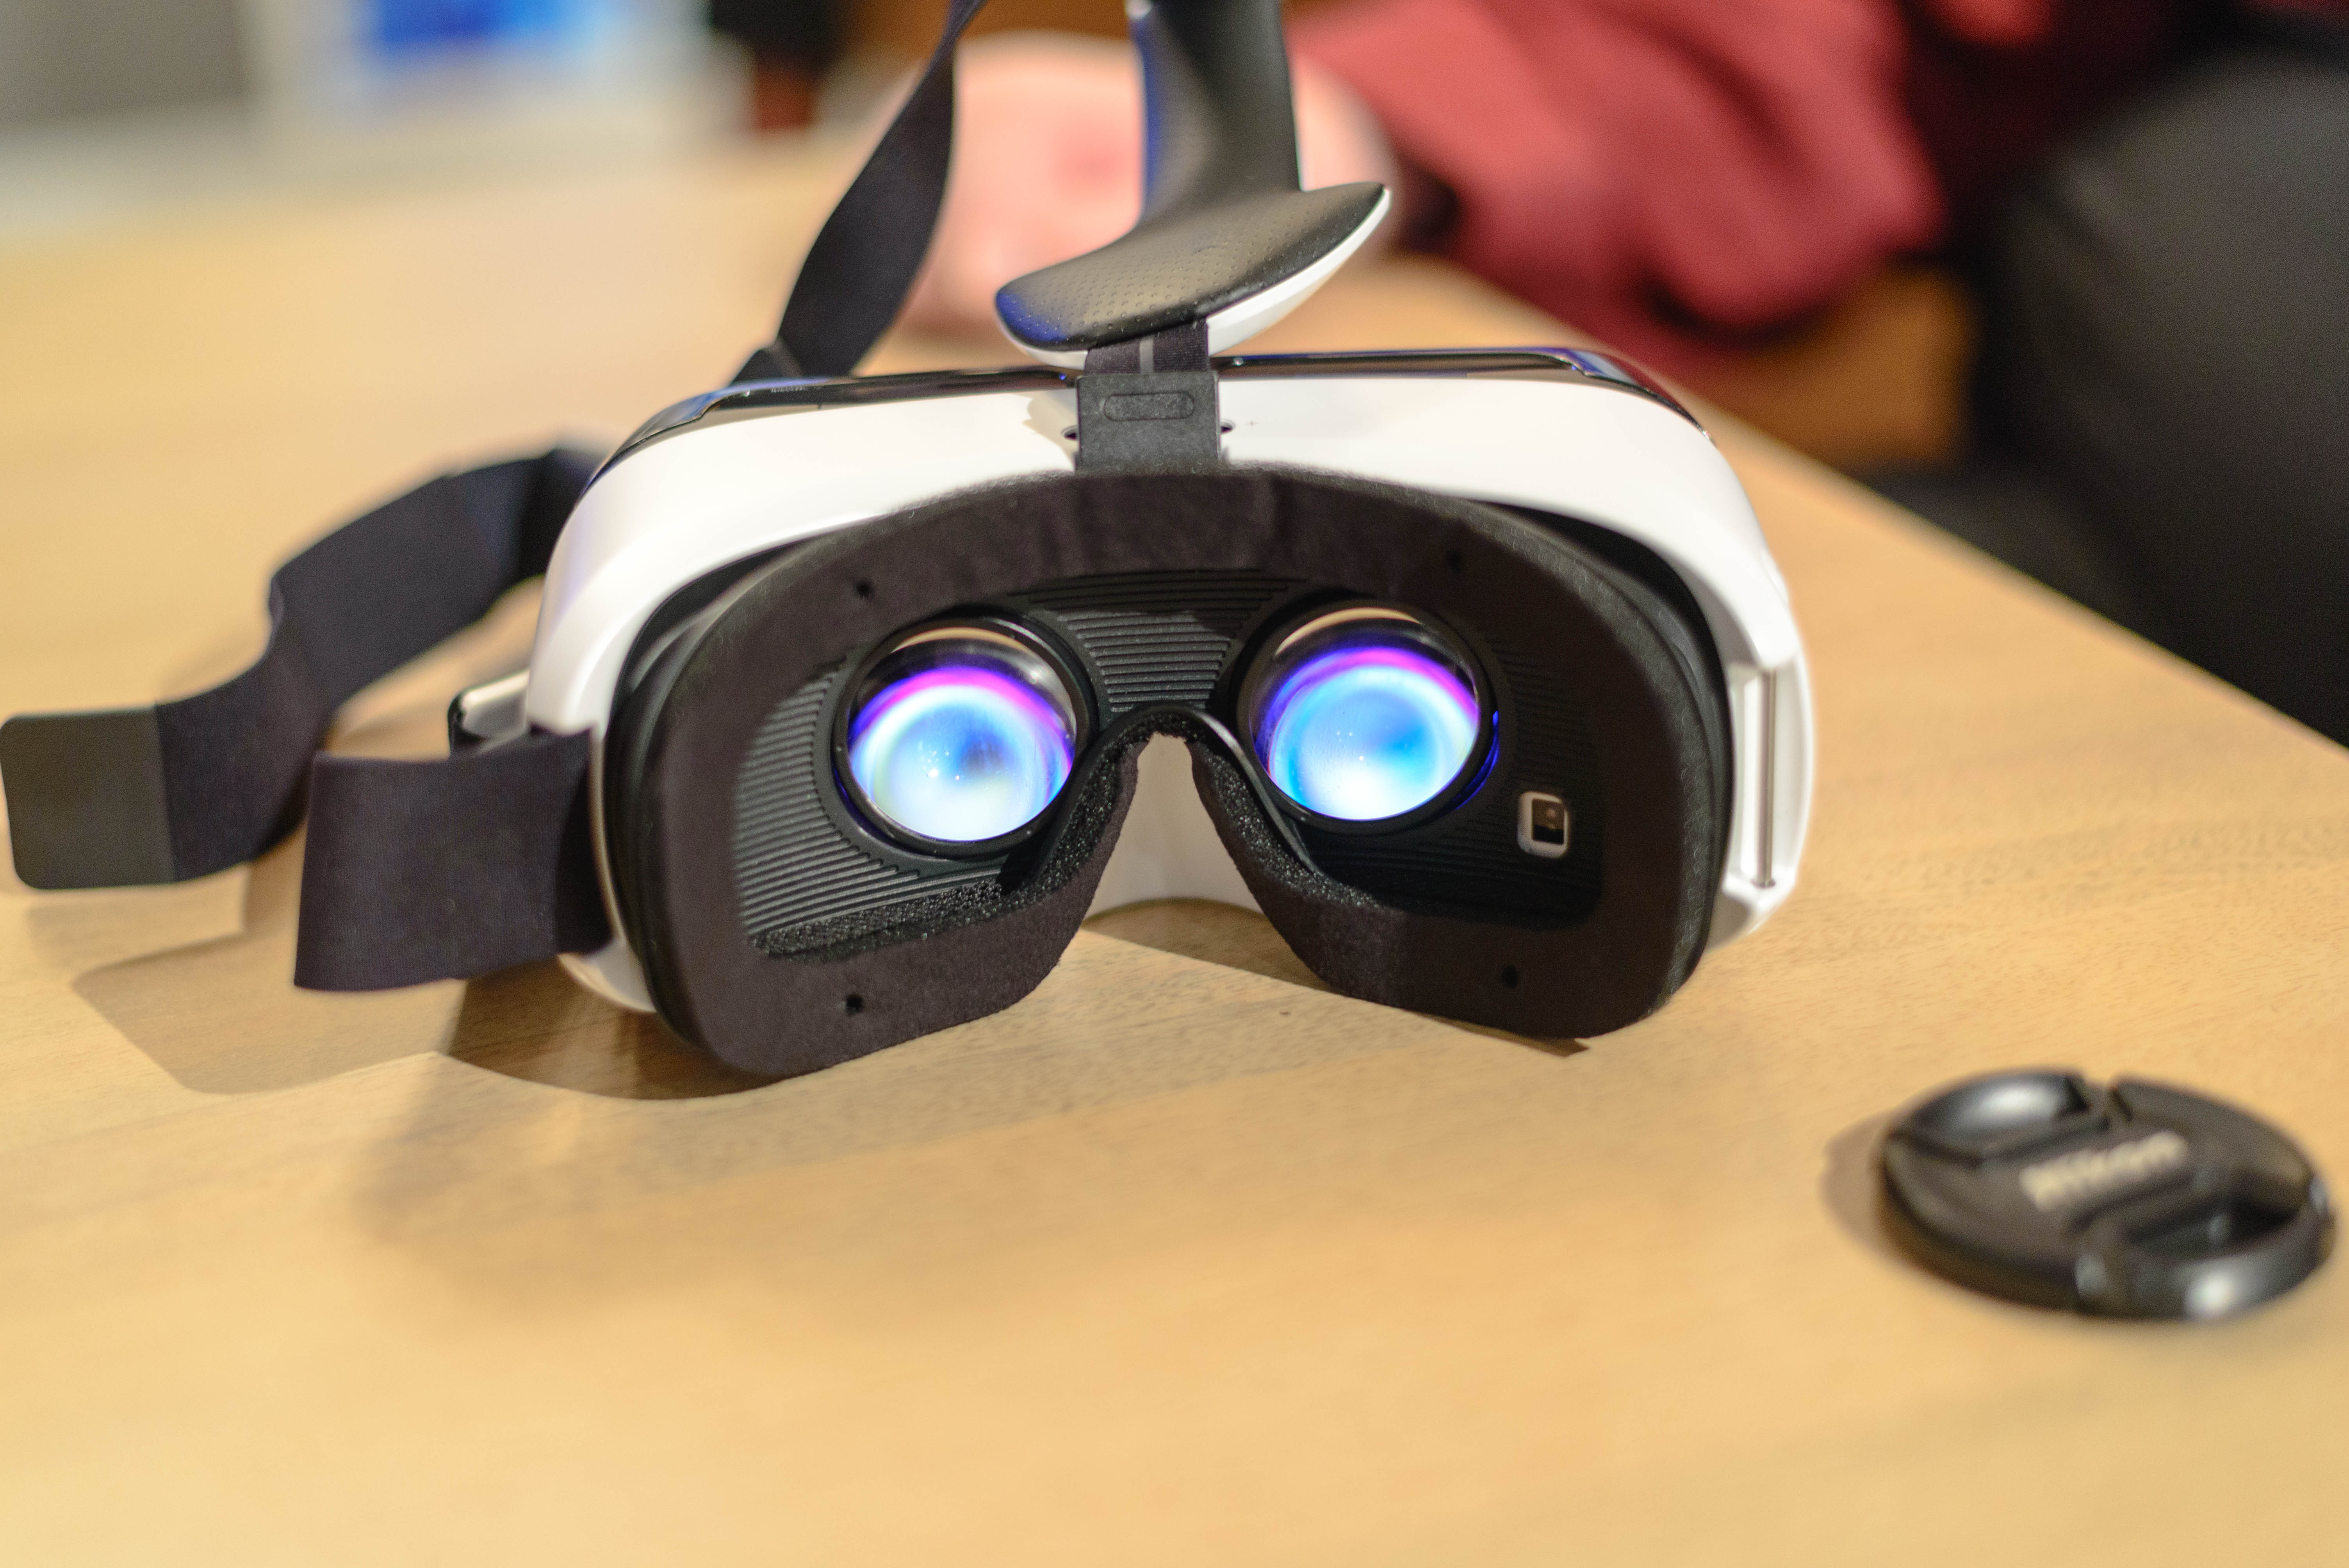 Samsung Announces Gear Vr A Vr Harness For Your Note 4